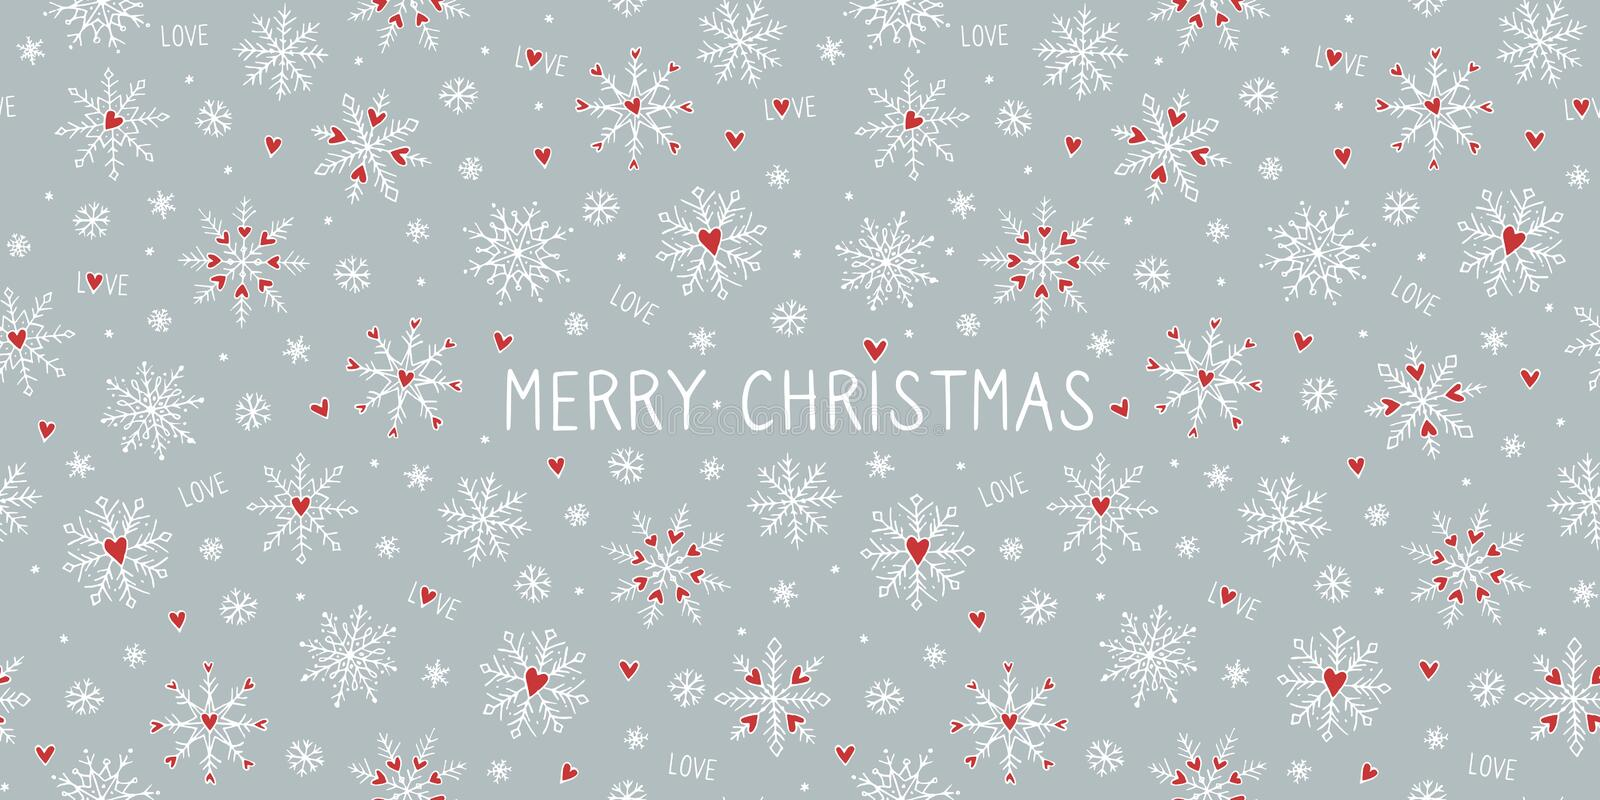 Christmas card template with snowflake hearts. Christmas card template or banner with cute hand drawn snowflakes and little red hearts royalty free illustration